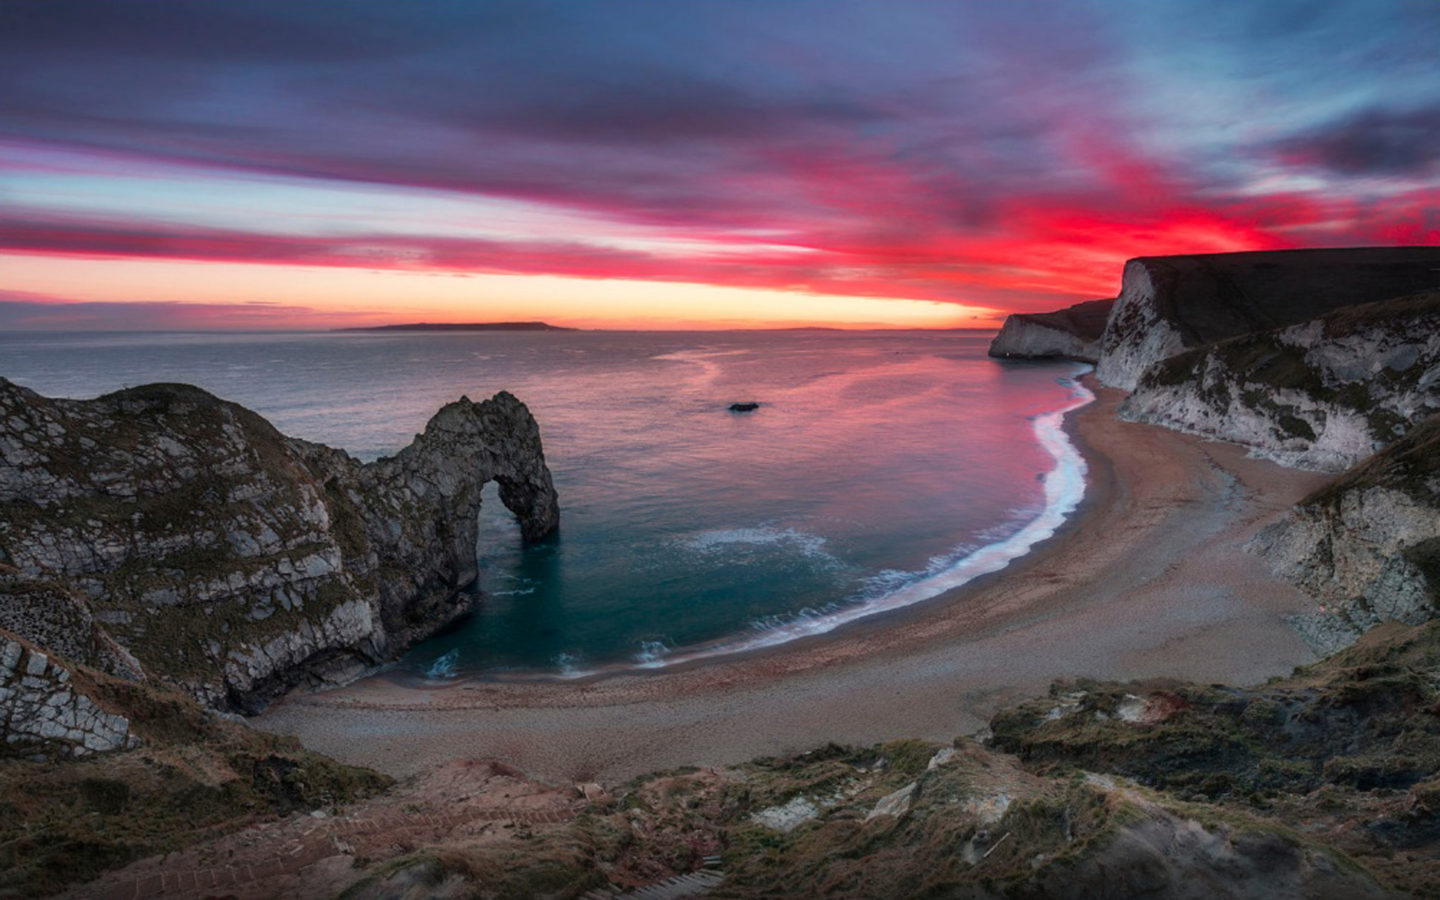 Sea Shore Sky In Flame Nice Red Sunset Over Durdle Door